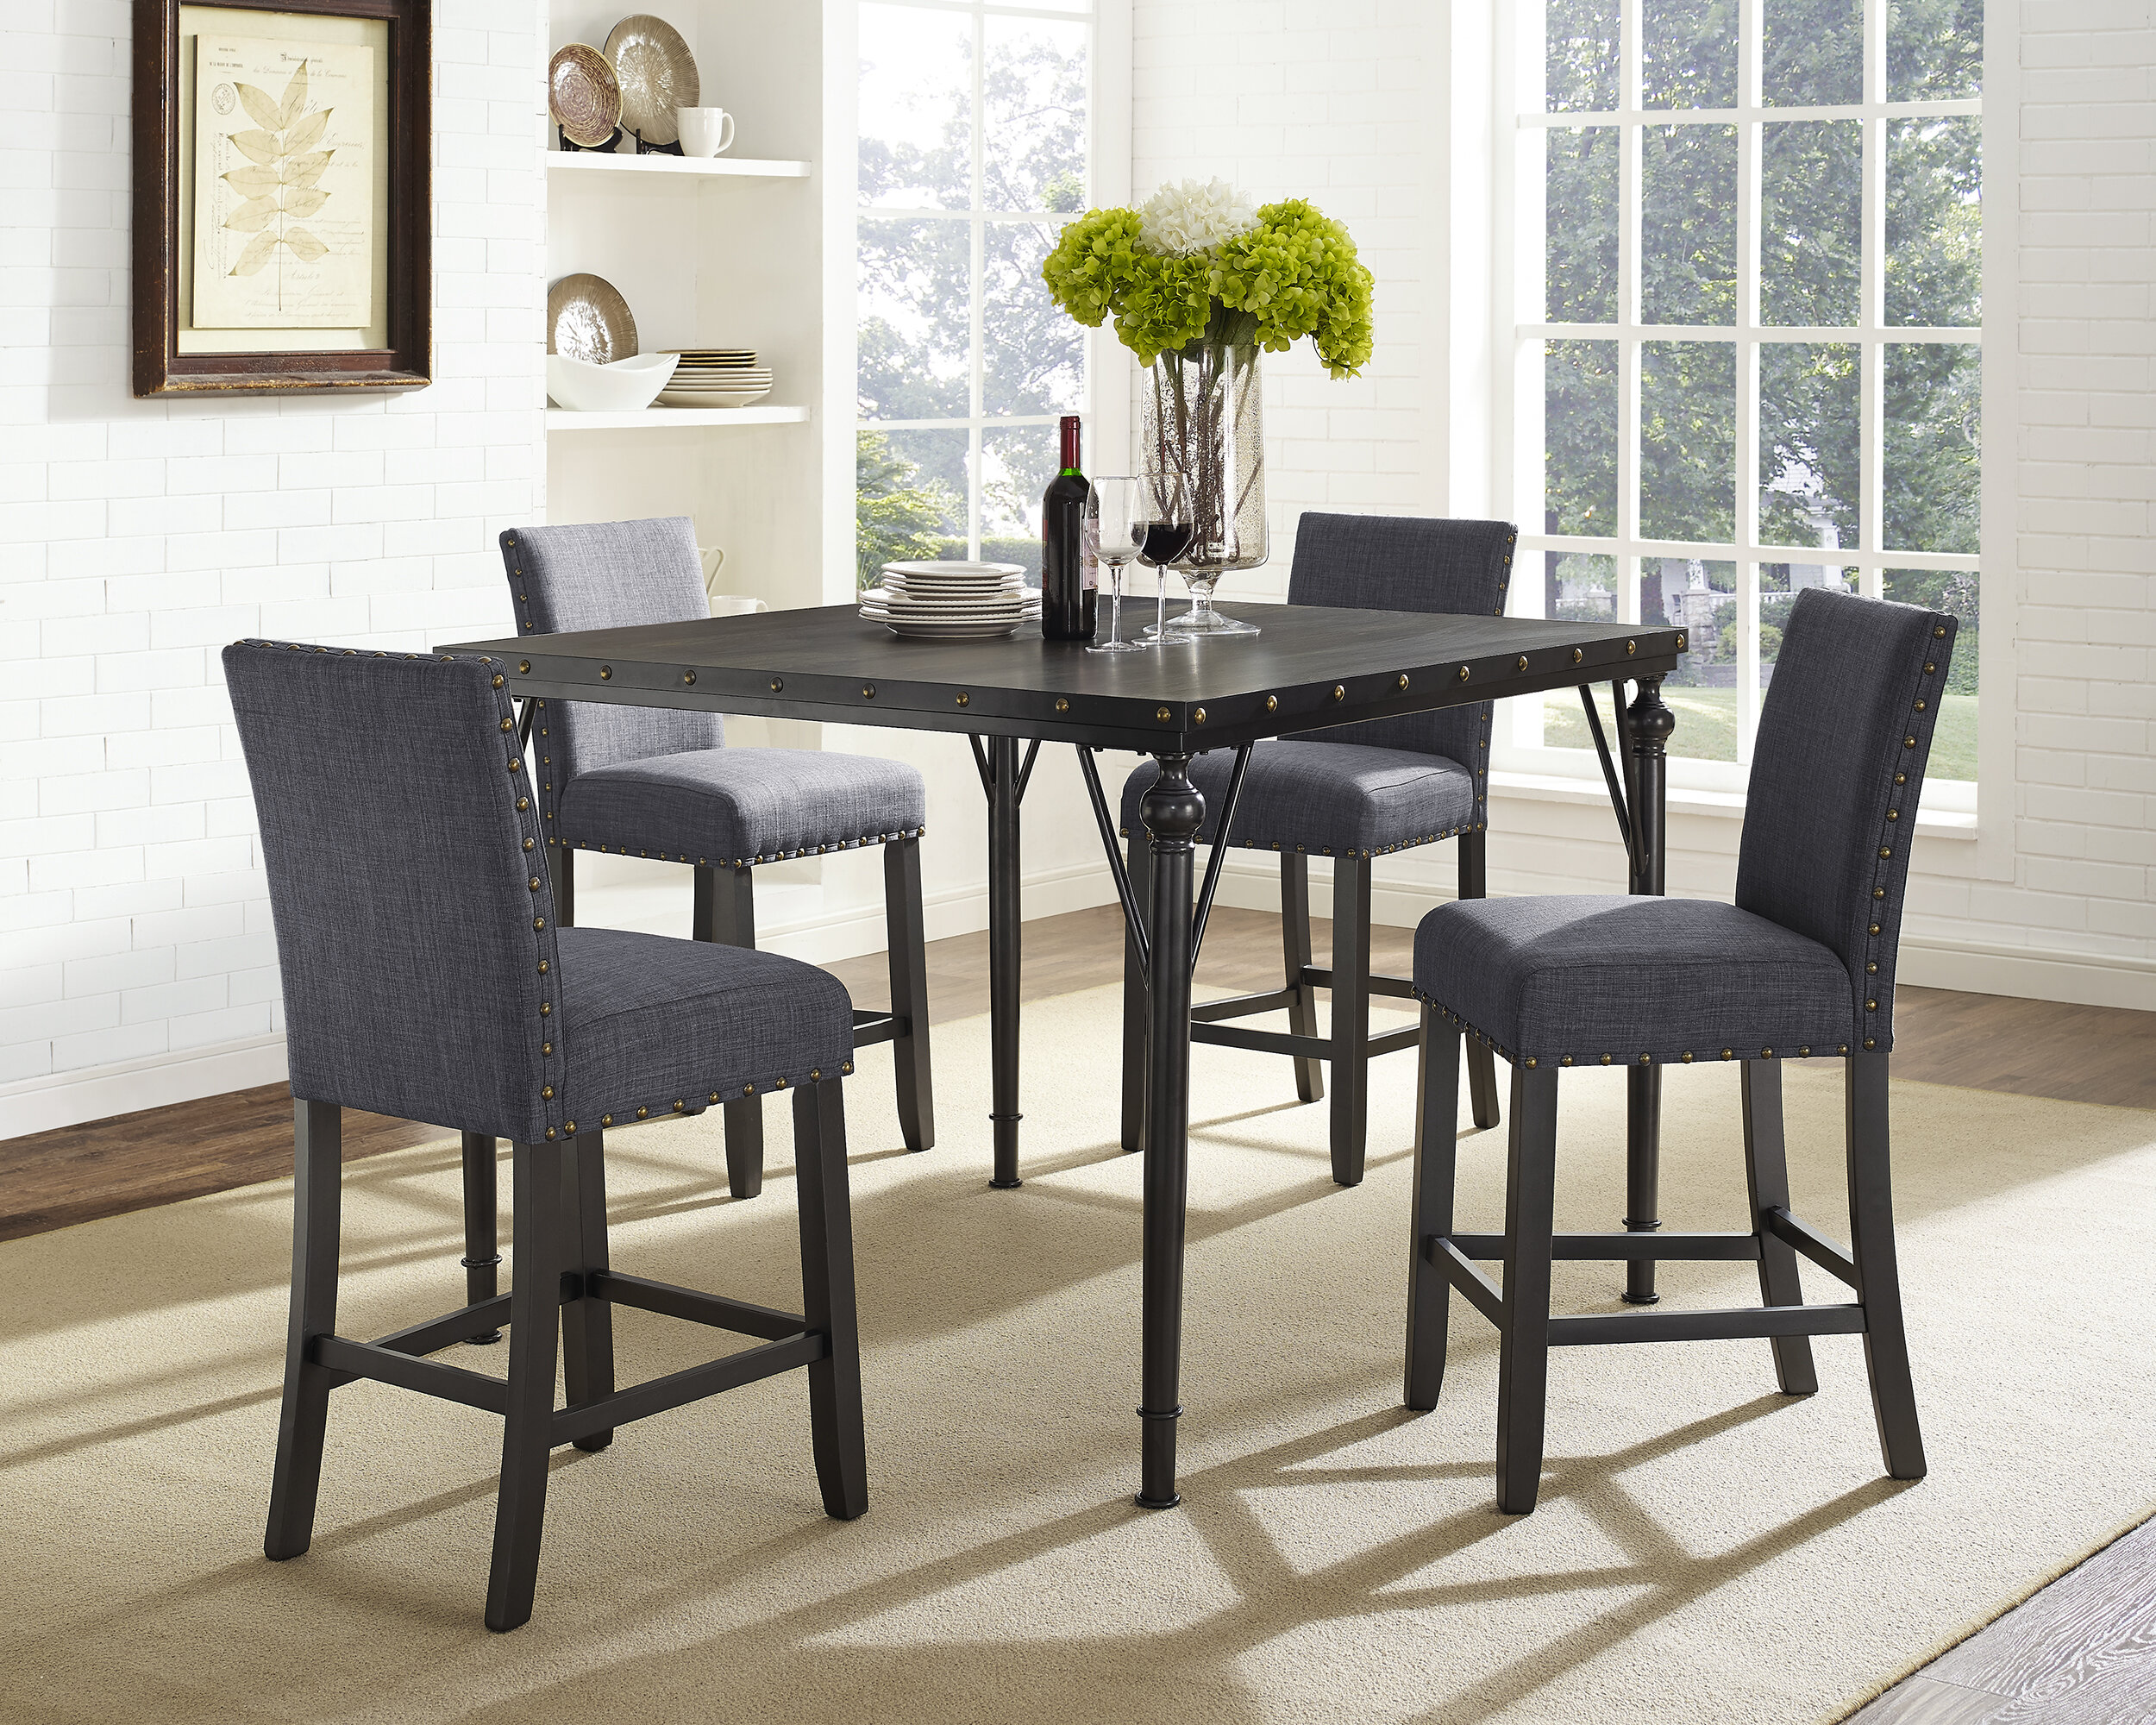 Haysi Wood Counter Height 5 Piece Dining Set With Fabric Nailhead Chairs Reviews